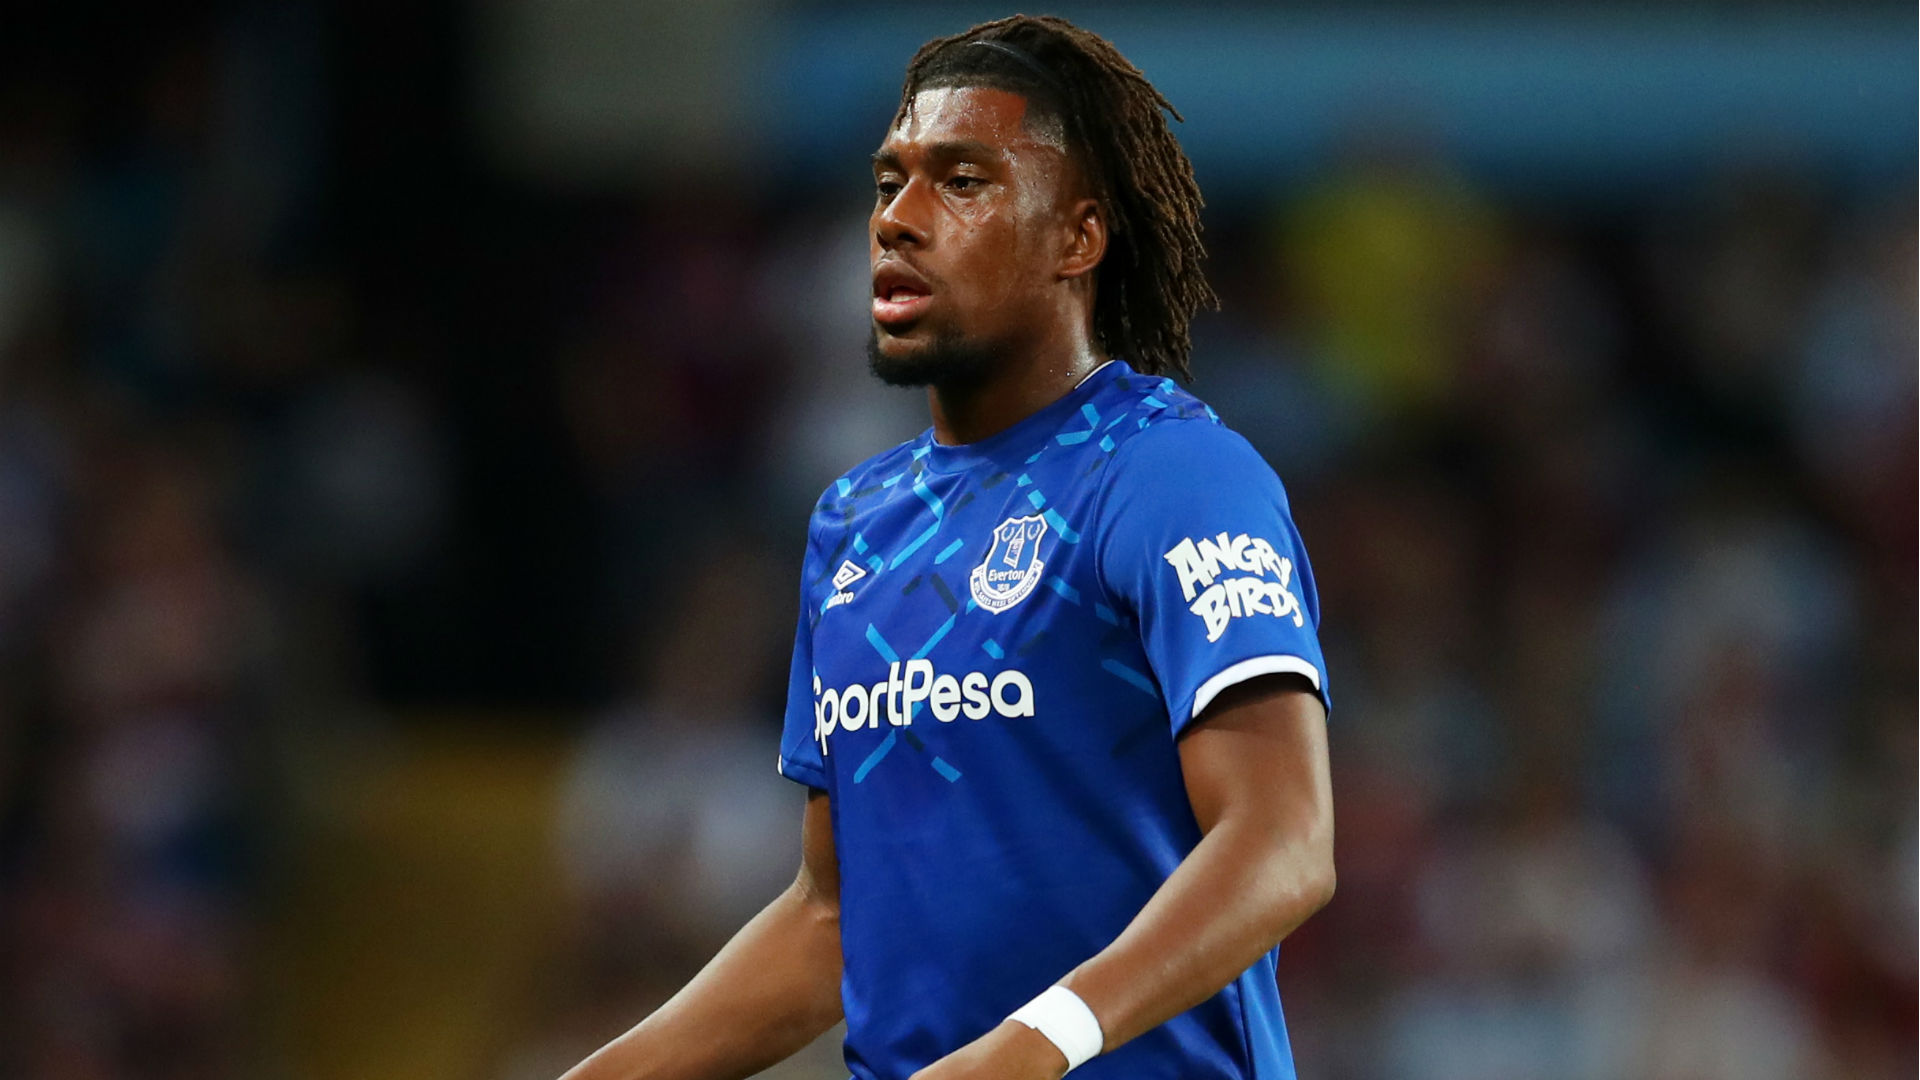 alex iwobi n3d1tv3s6das1d1ng869p55bf - Everton beat Southampton 2-1 for first away win of the season